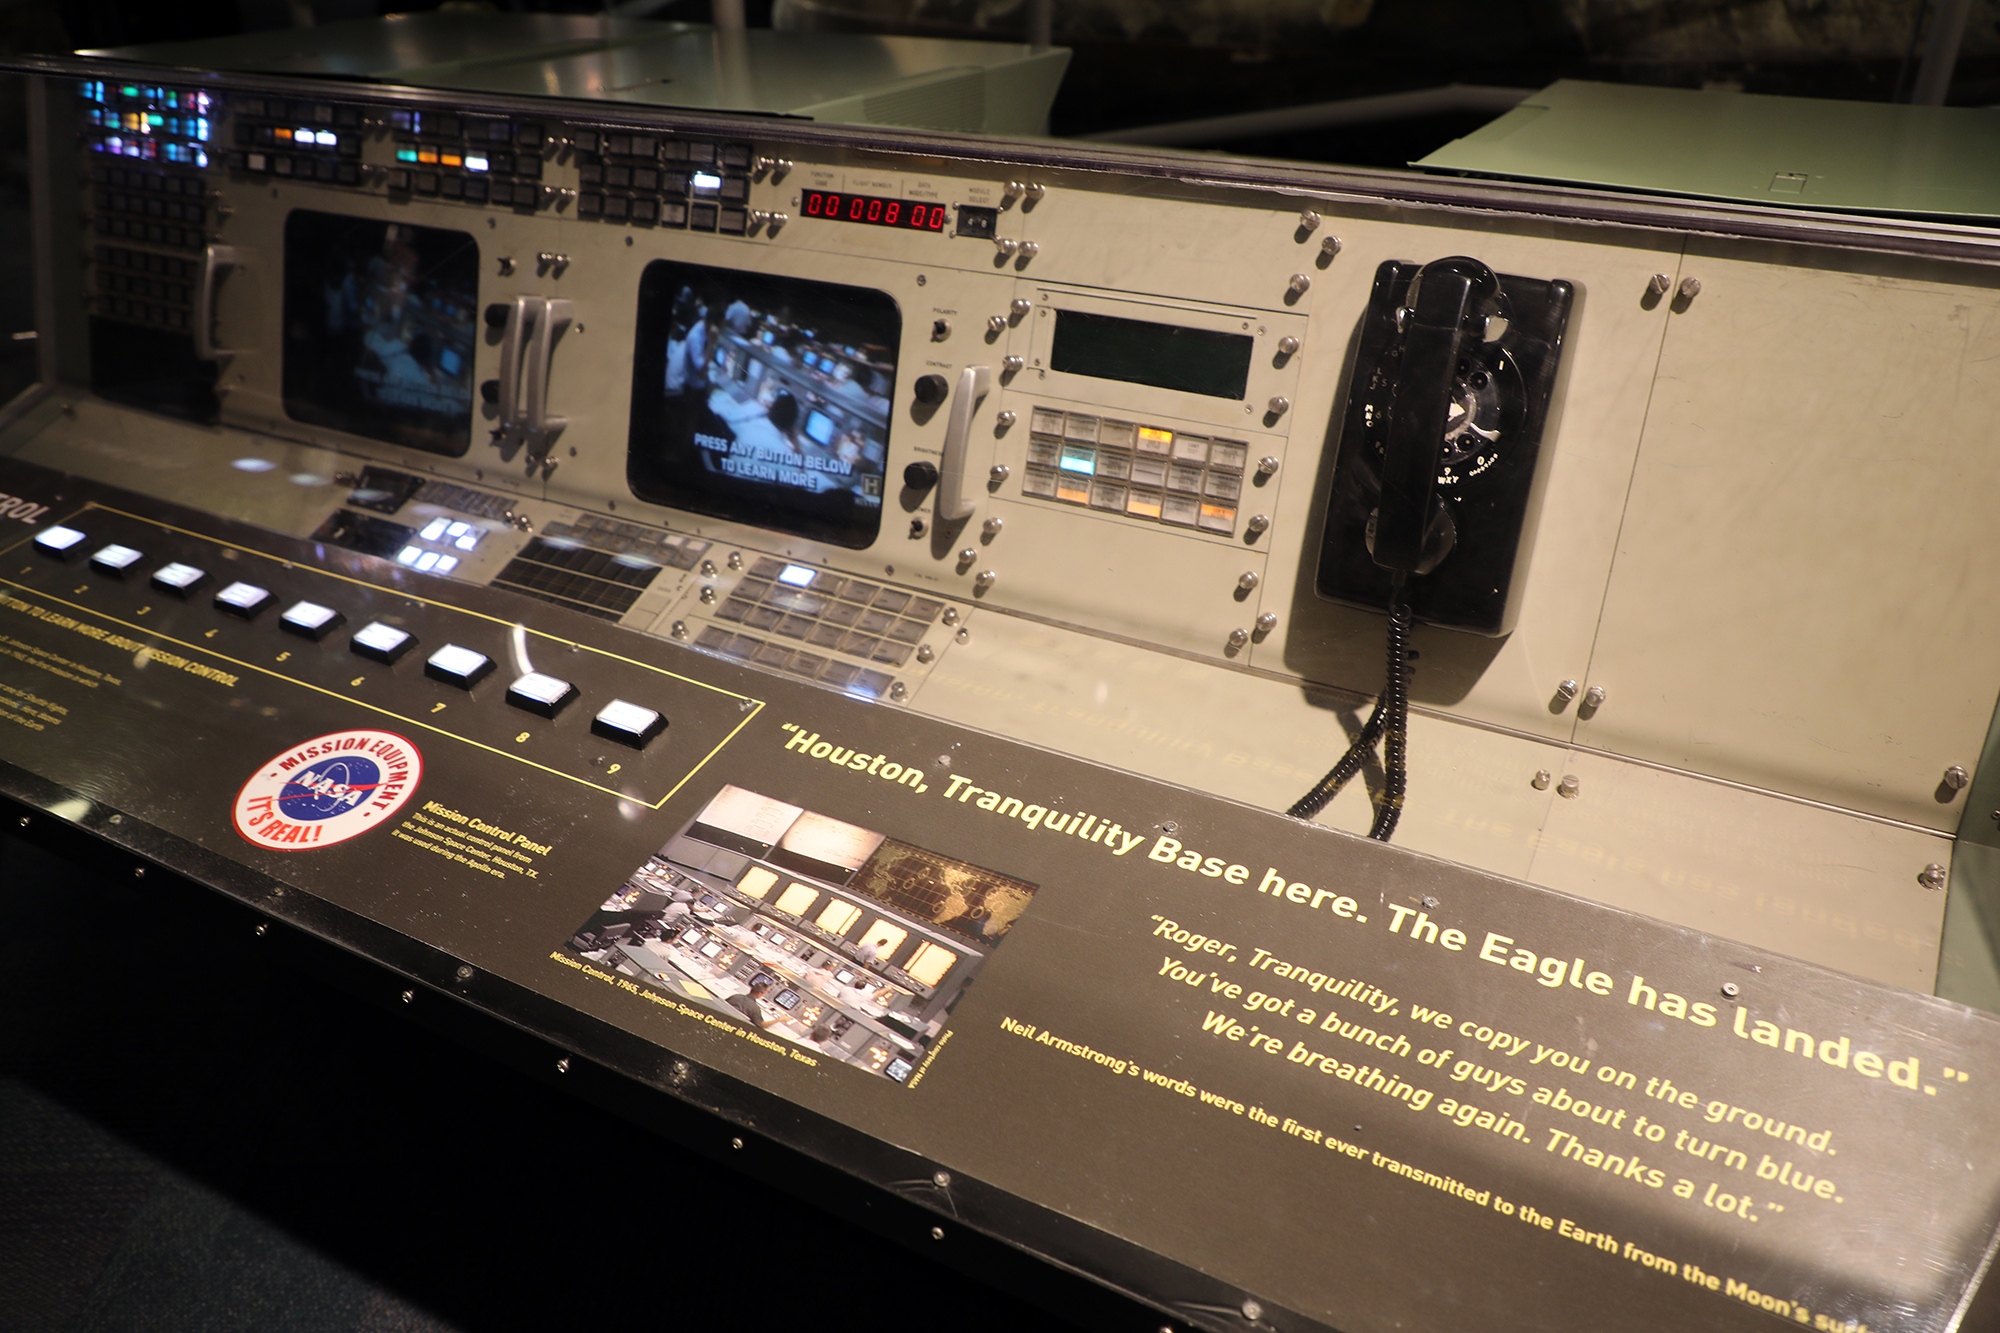 A mission control panel from the Johnson Space Center in Houston, Texas that was used during the Apollo era. (Arionne Nettles/WBEZ)